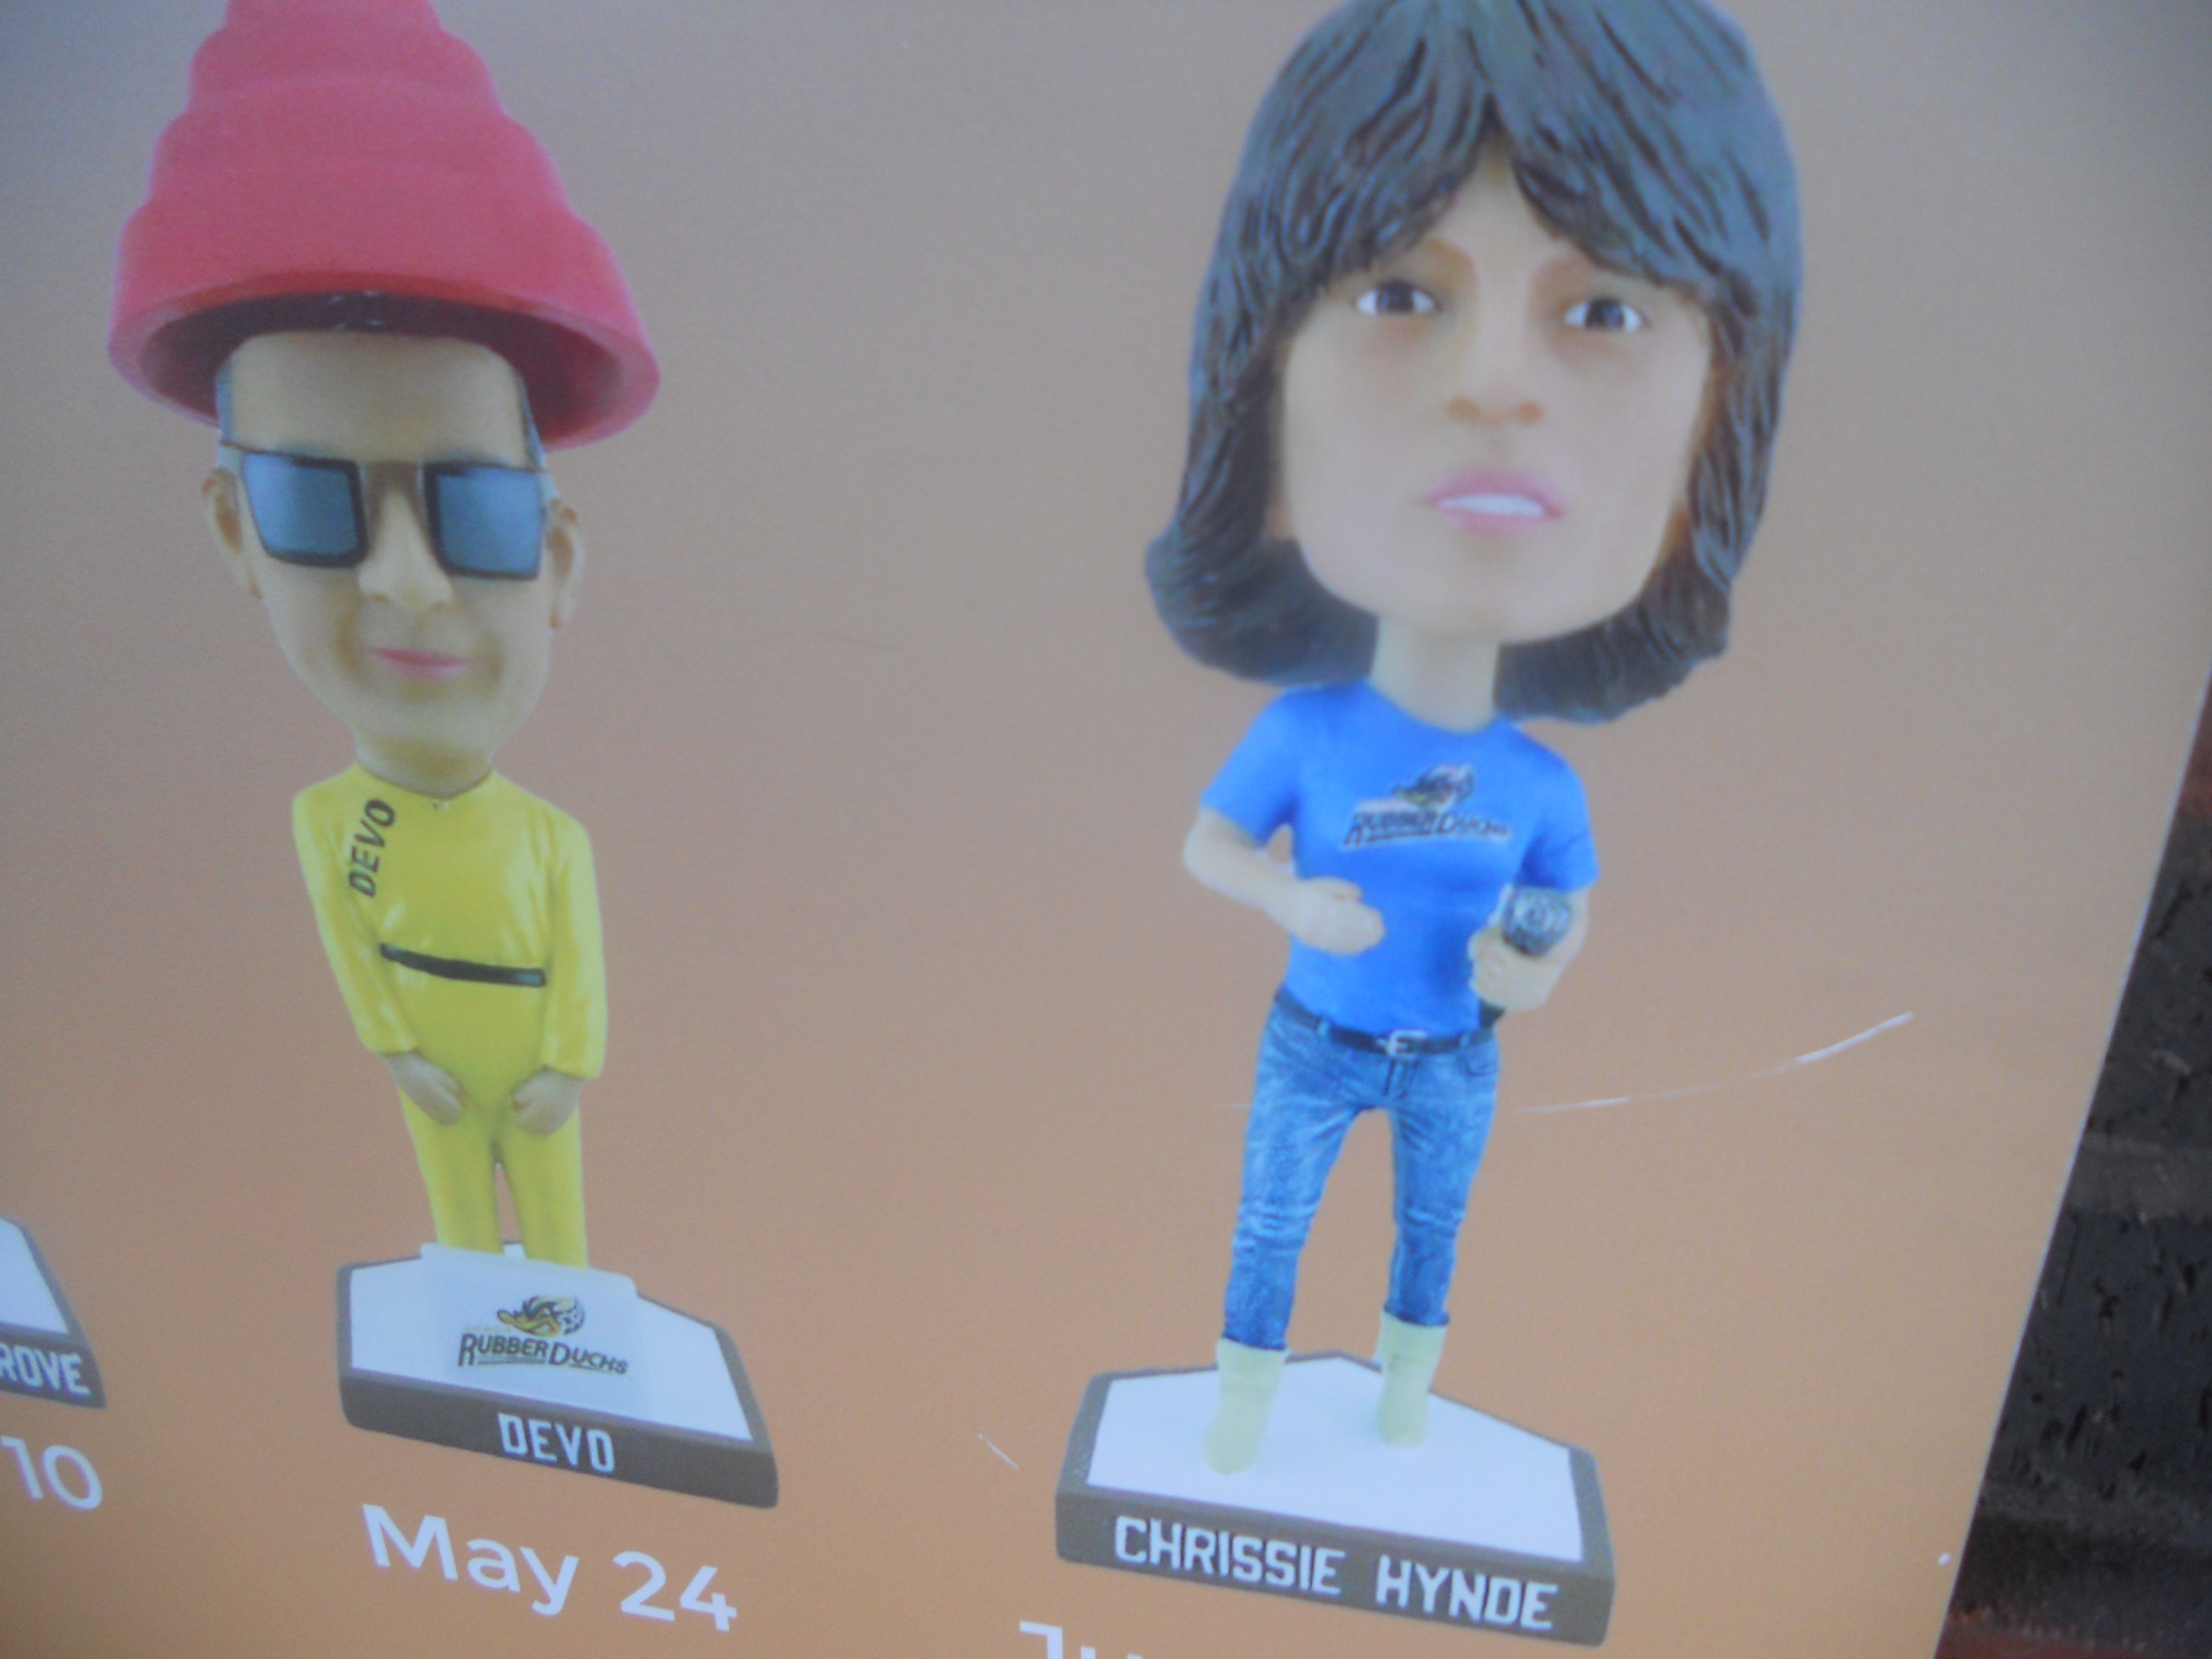 Akron Rock n' Roll Bobble Head giveaways.